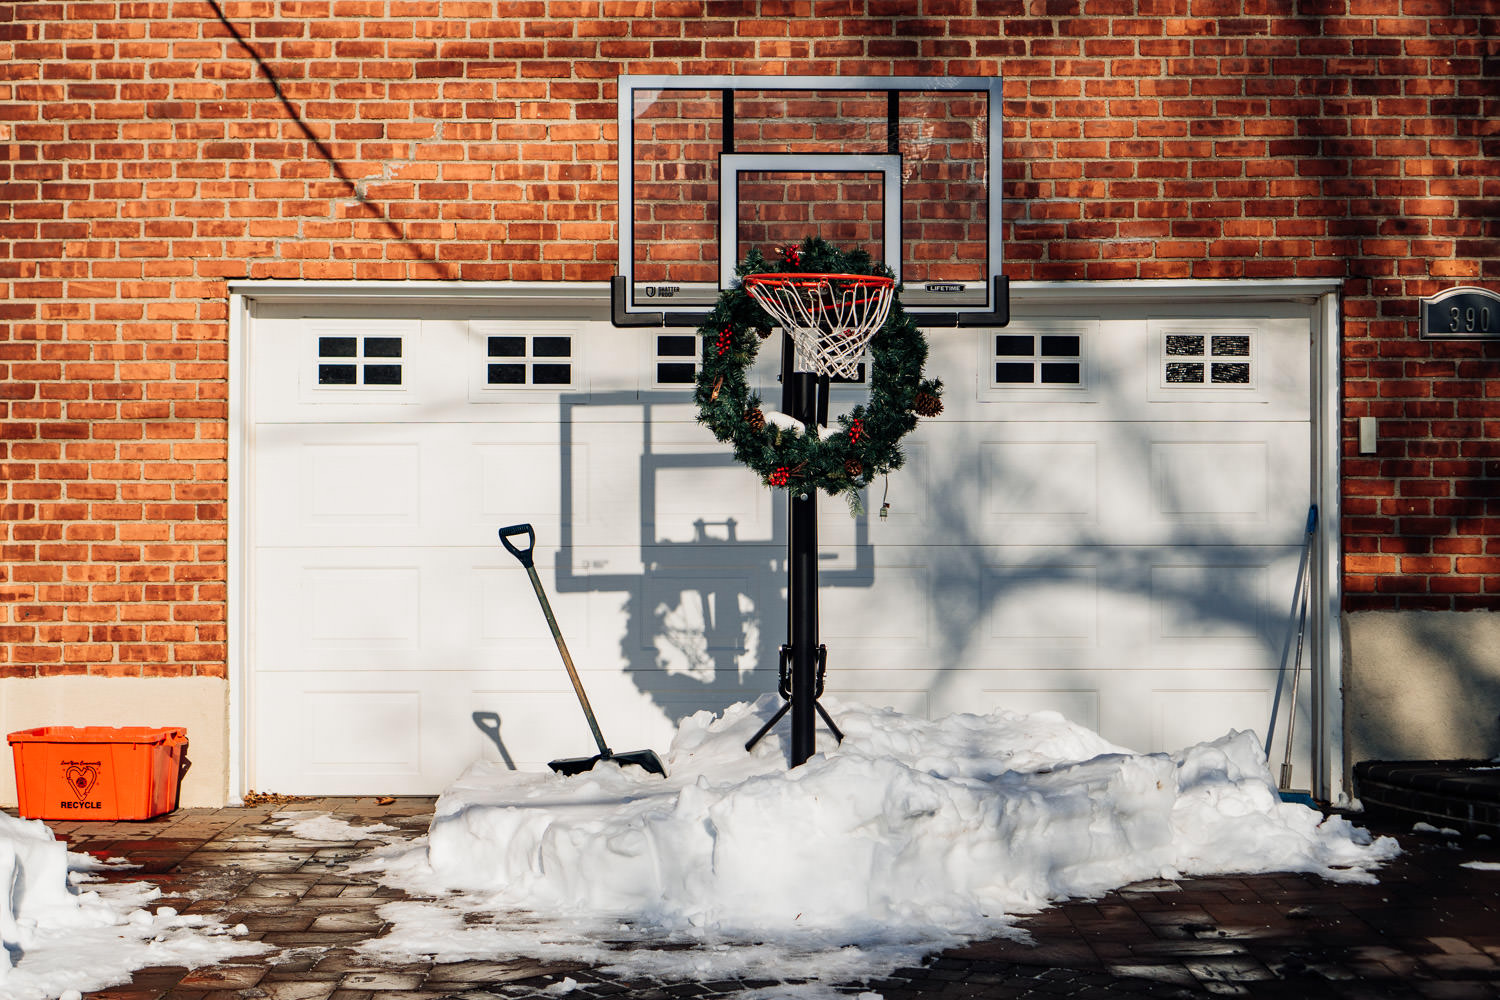 A Christmas wreath hangs on a basketball hoop.